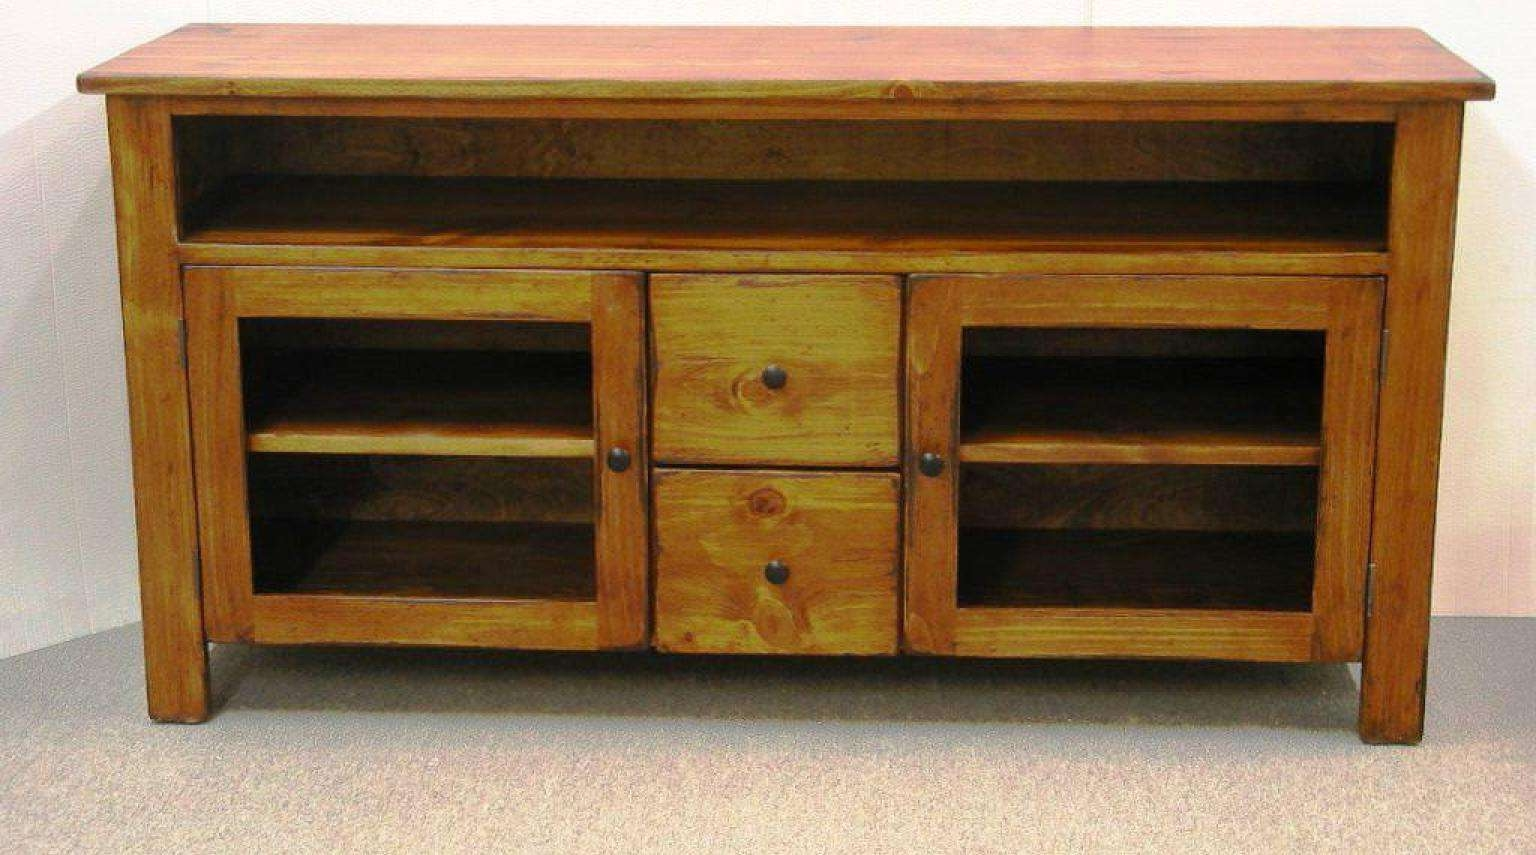 Tv : Red Entertainment Center Beautiful Rustic Red Tv Stands Tv With Regard To Rustic Red Tv Stands (View 14 of 20)